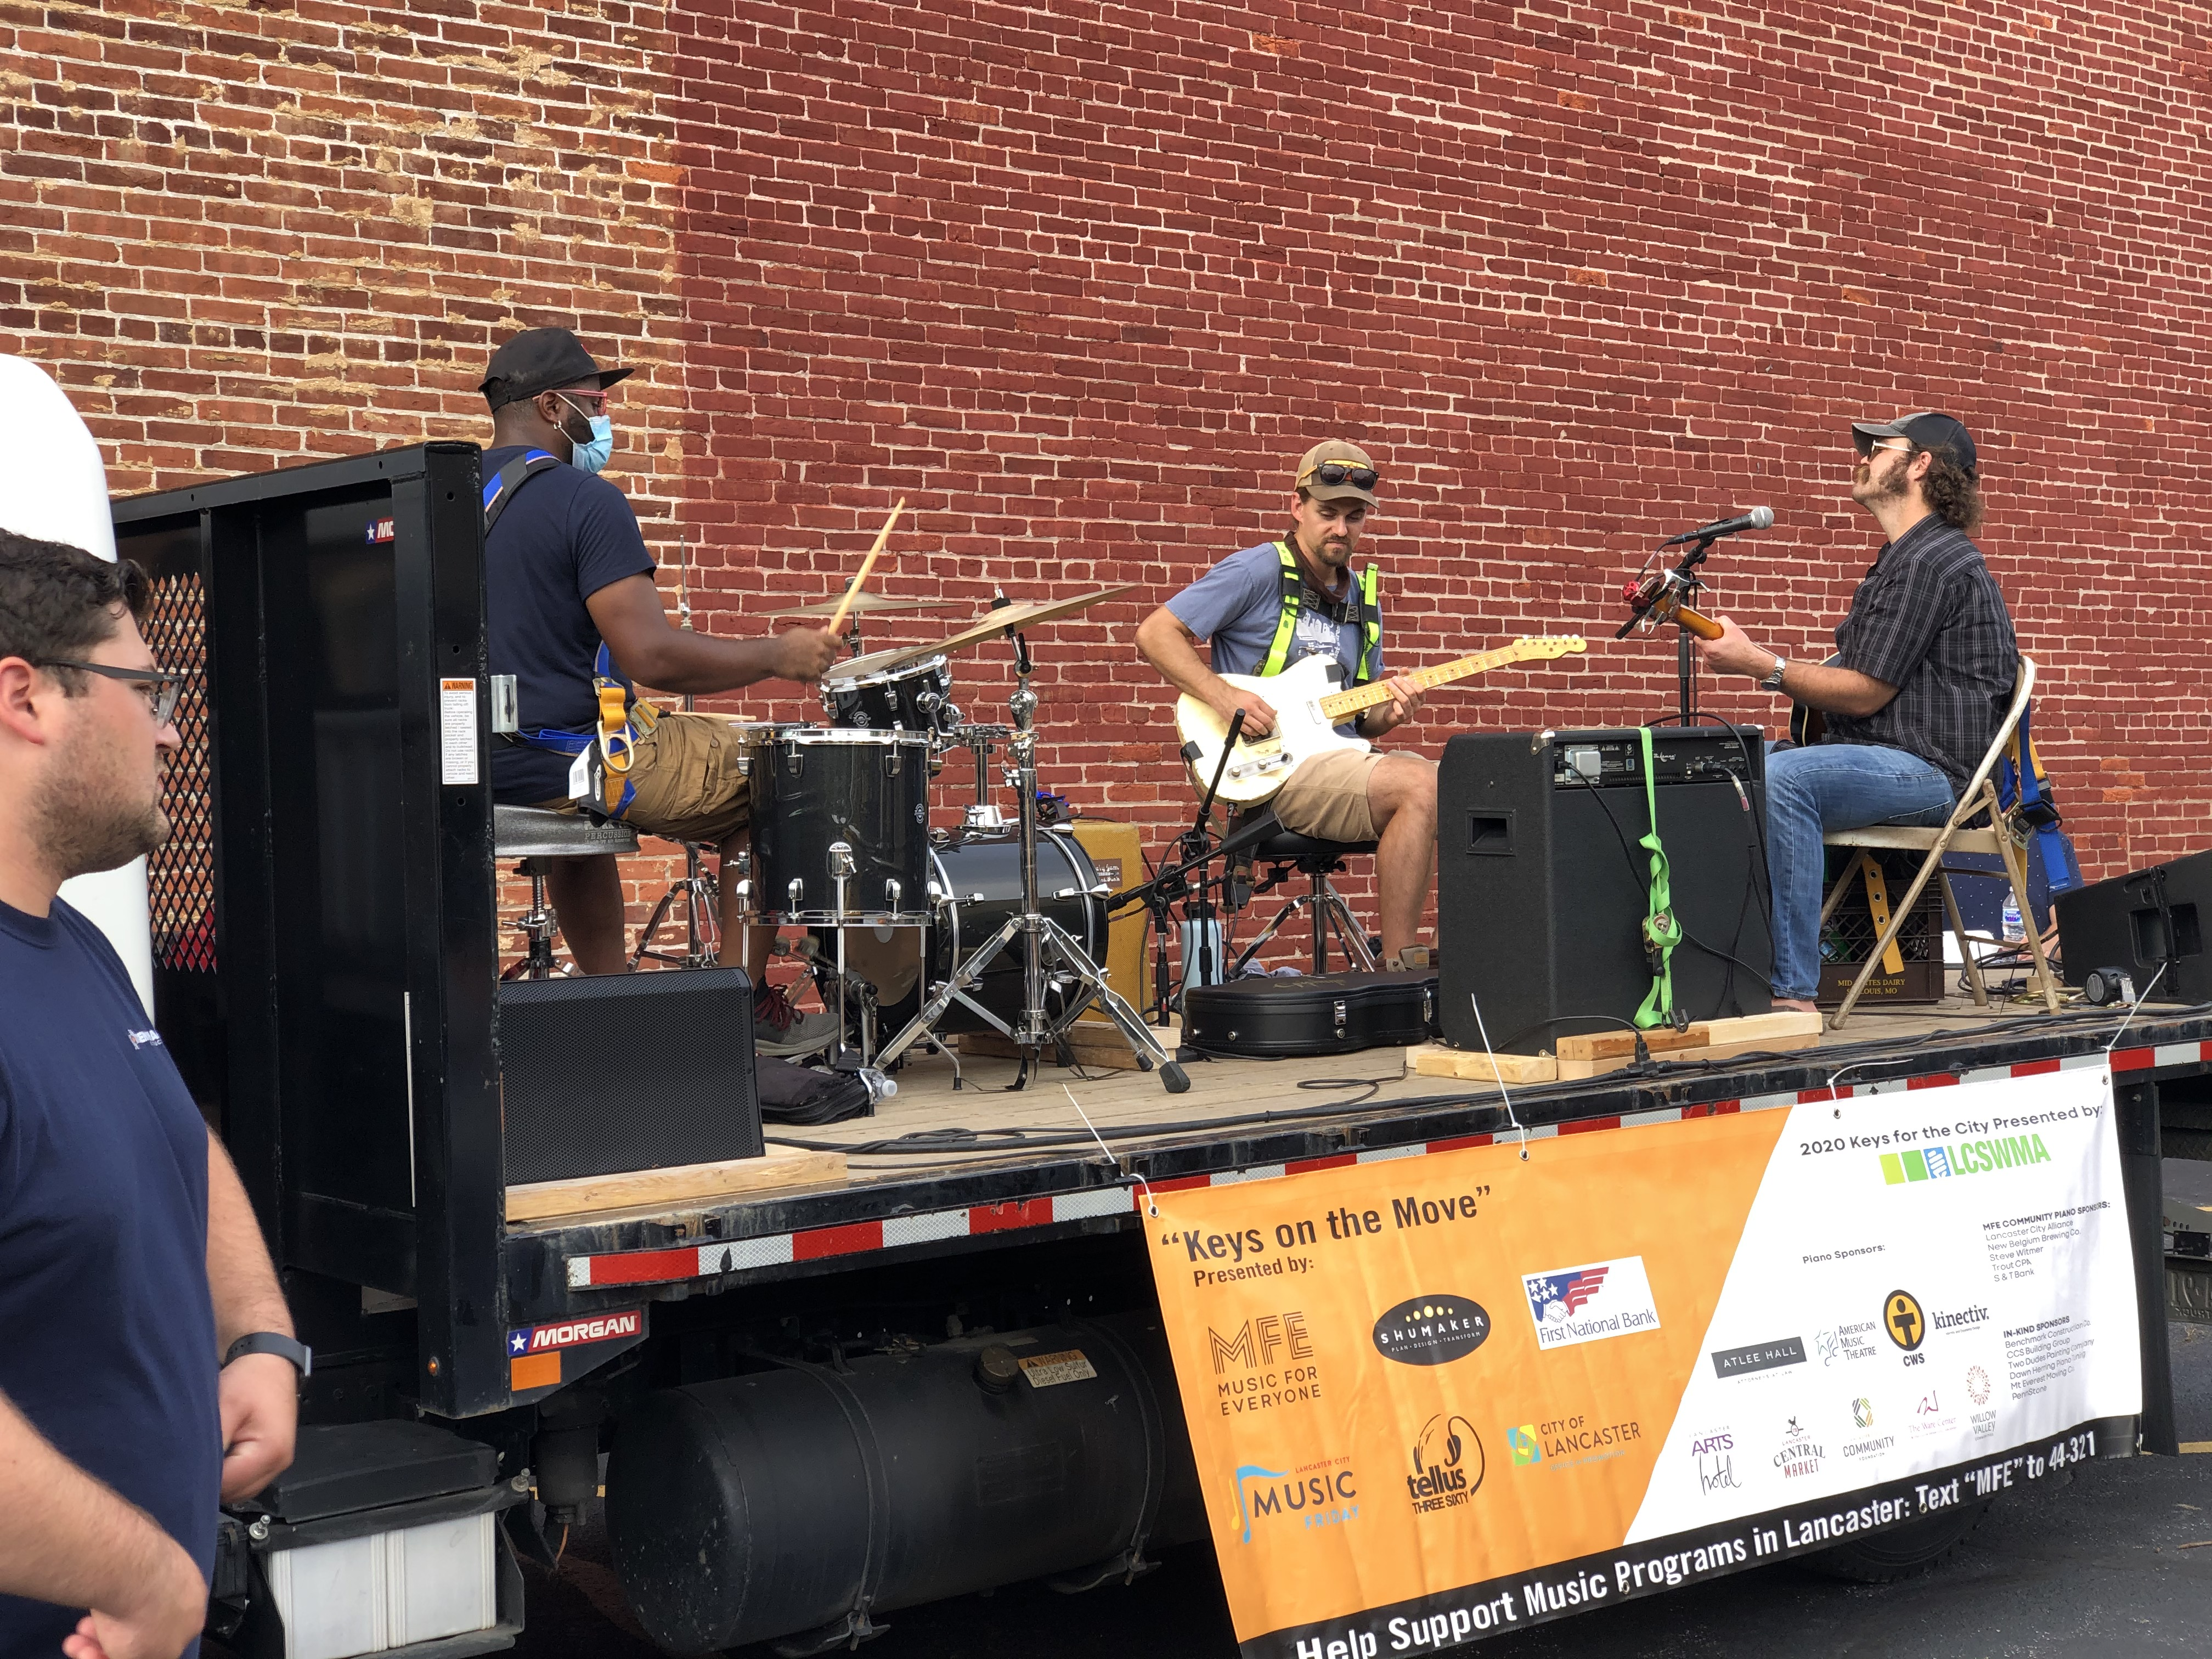 Andy Mowatt and his band performing on a flatbed truck.